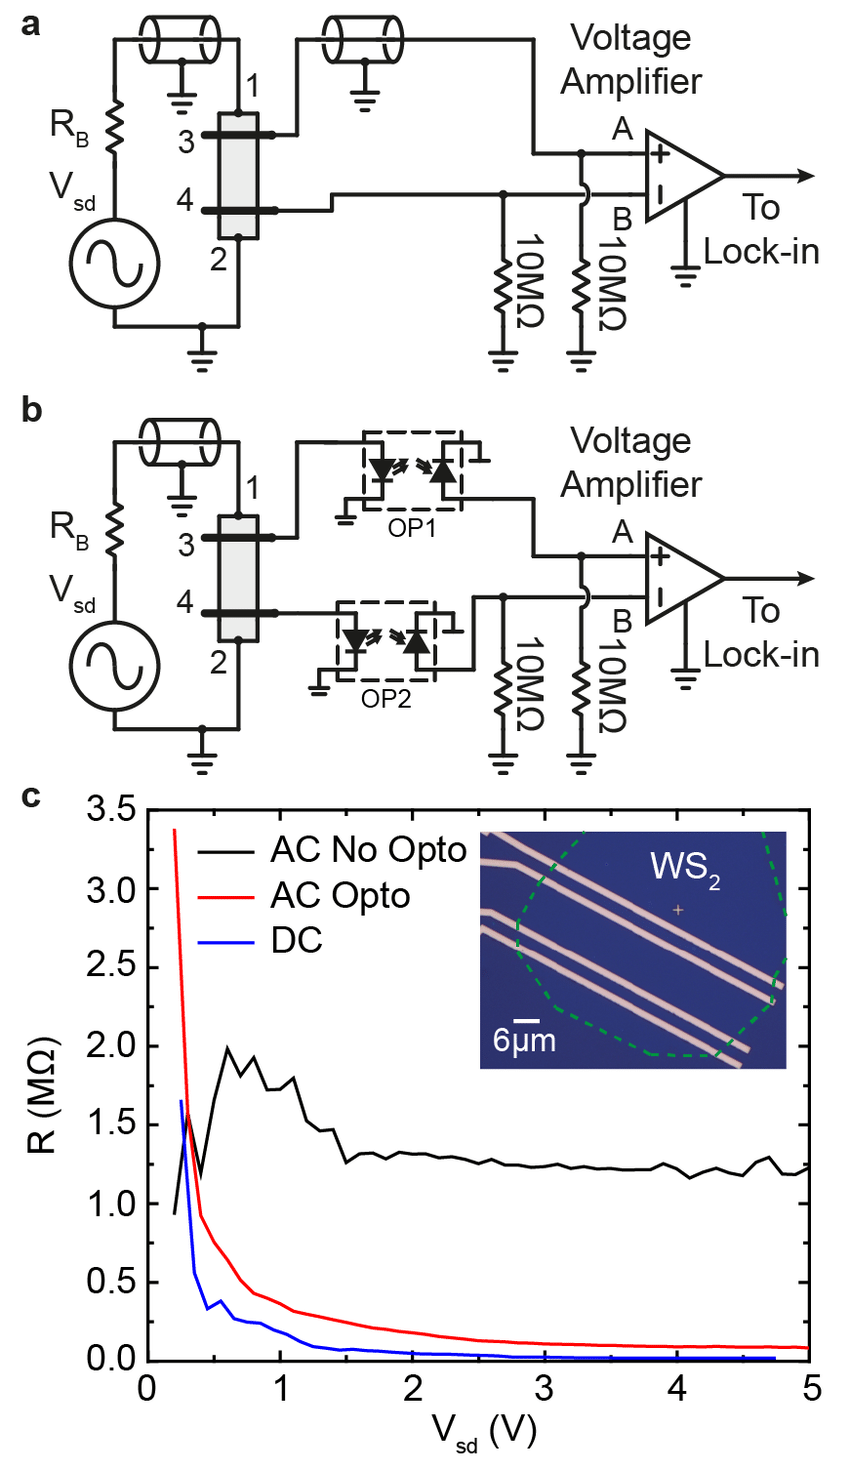 hight resolution of characterization of a ws 2 field effect transistor a electrical circuit configuration for